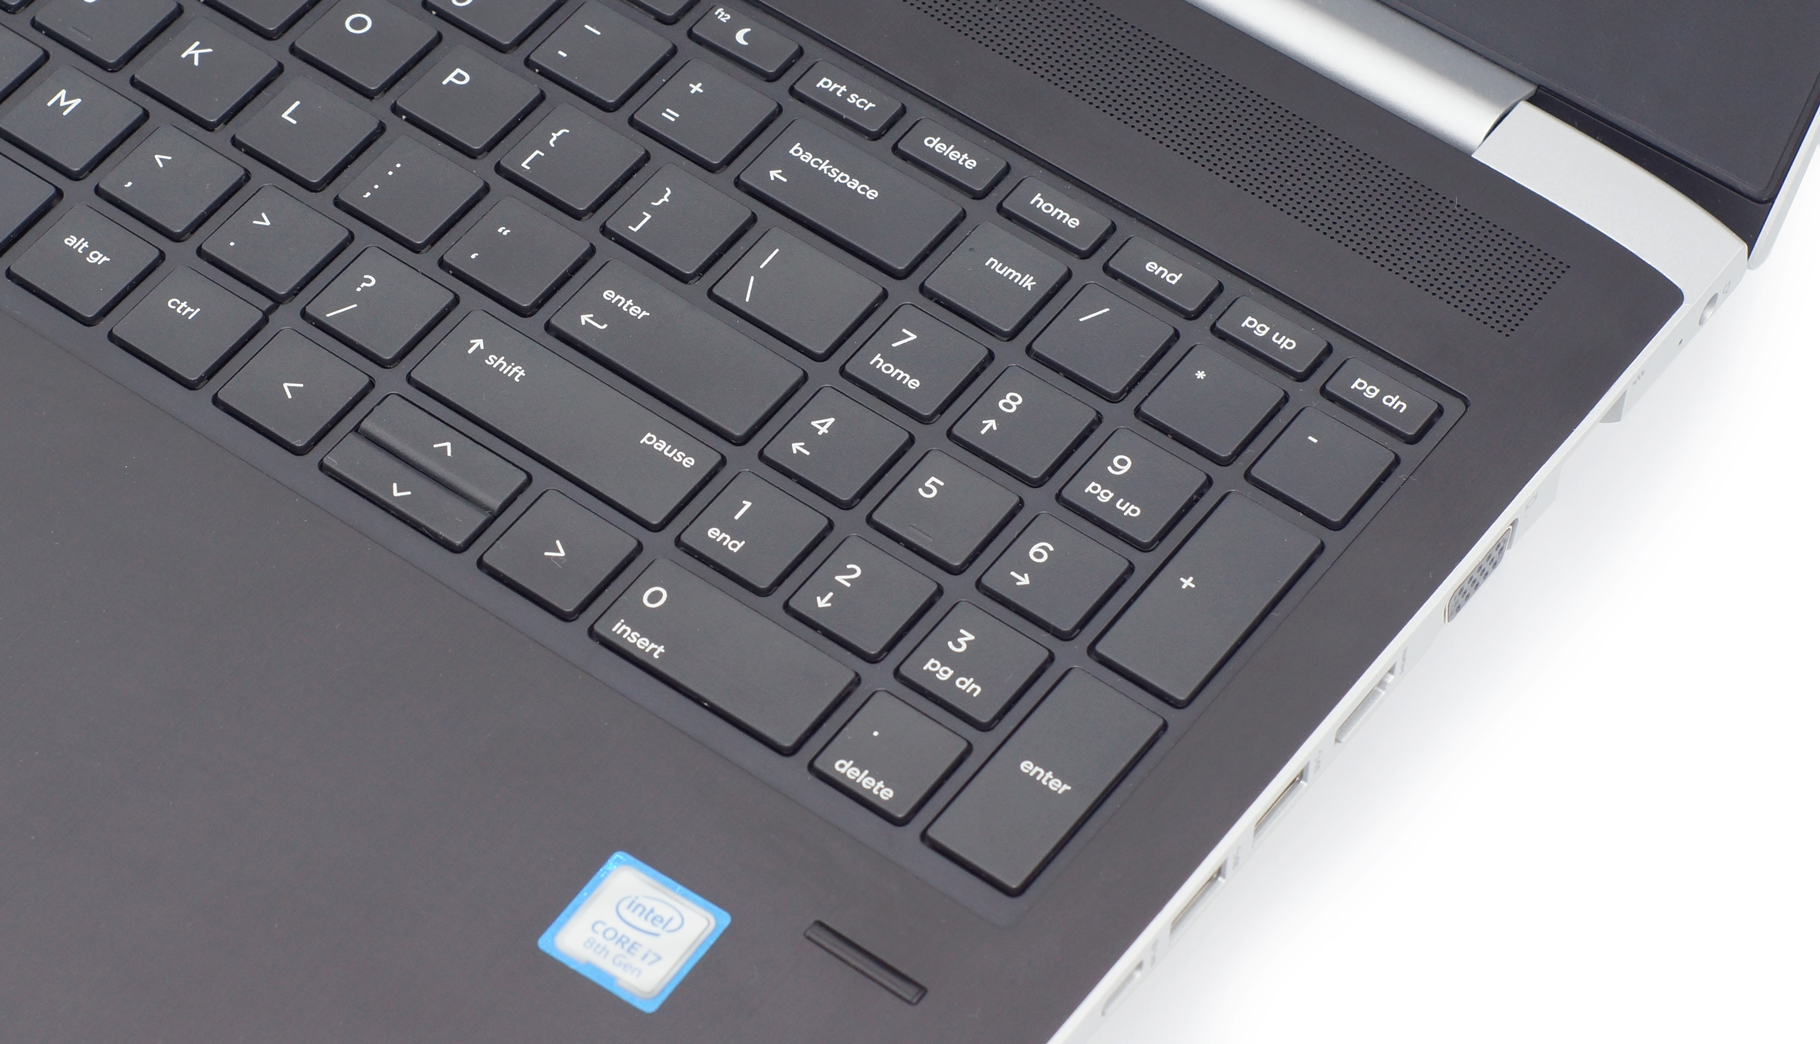 HP ProBook 450 G5 review – getting better and better